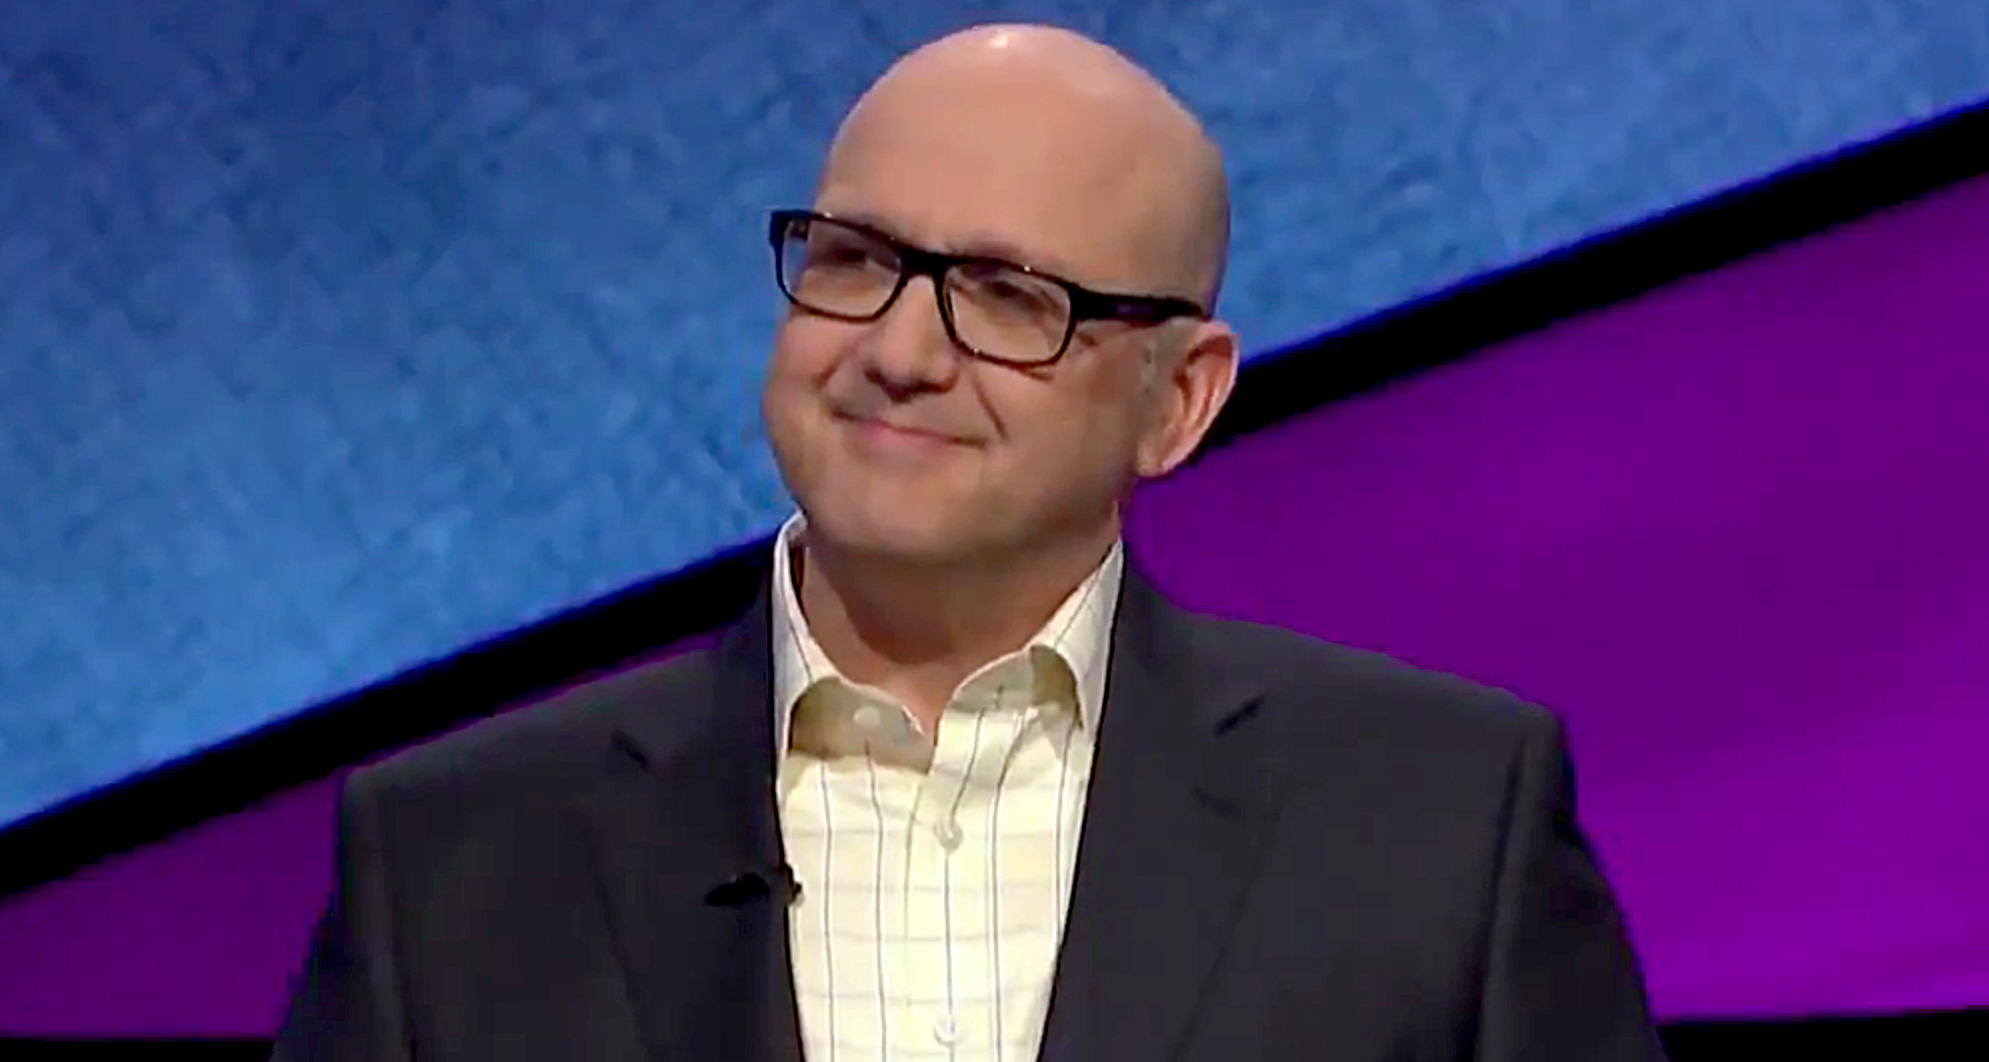 'Willy Wonka' Star Paris Themmen, Who Played Mike Teevee, Appears on 'Jeopardy!'